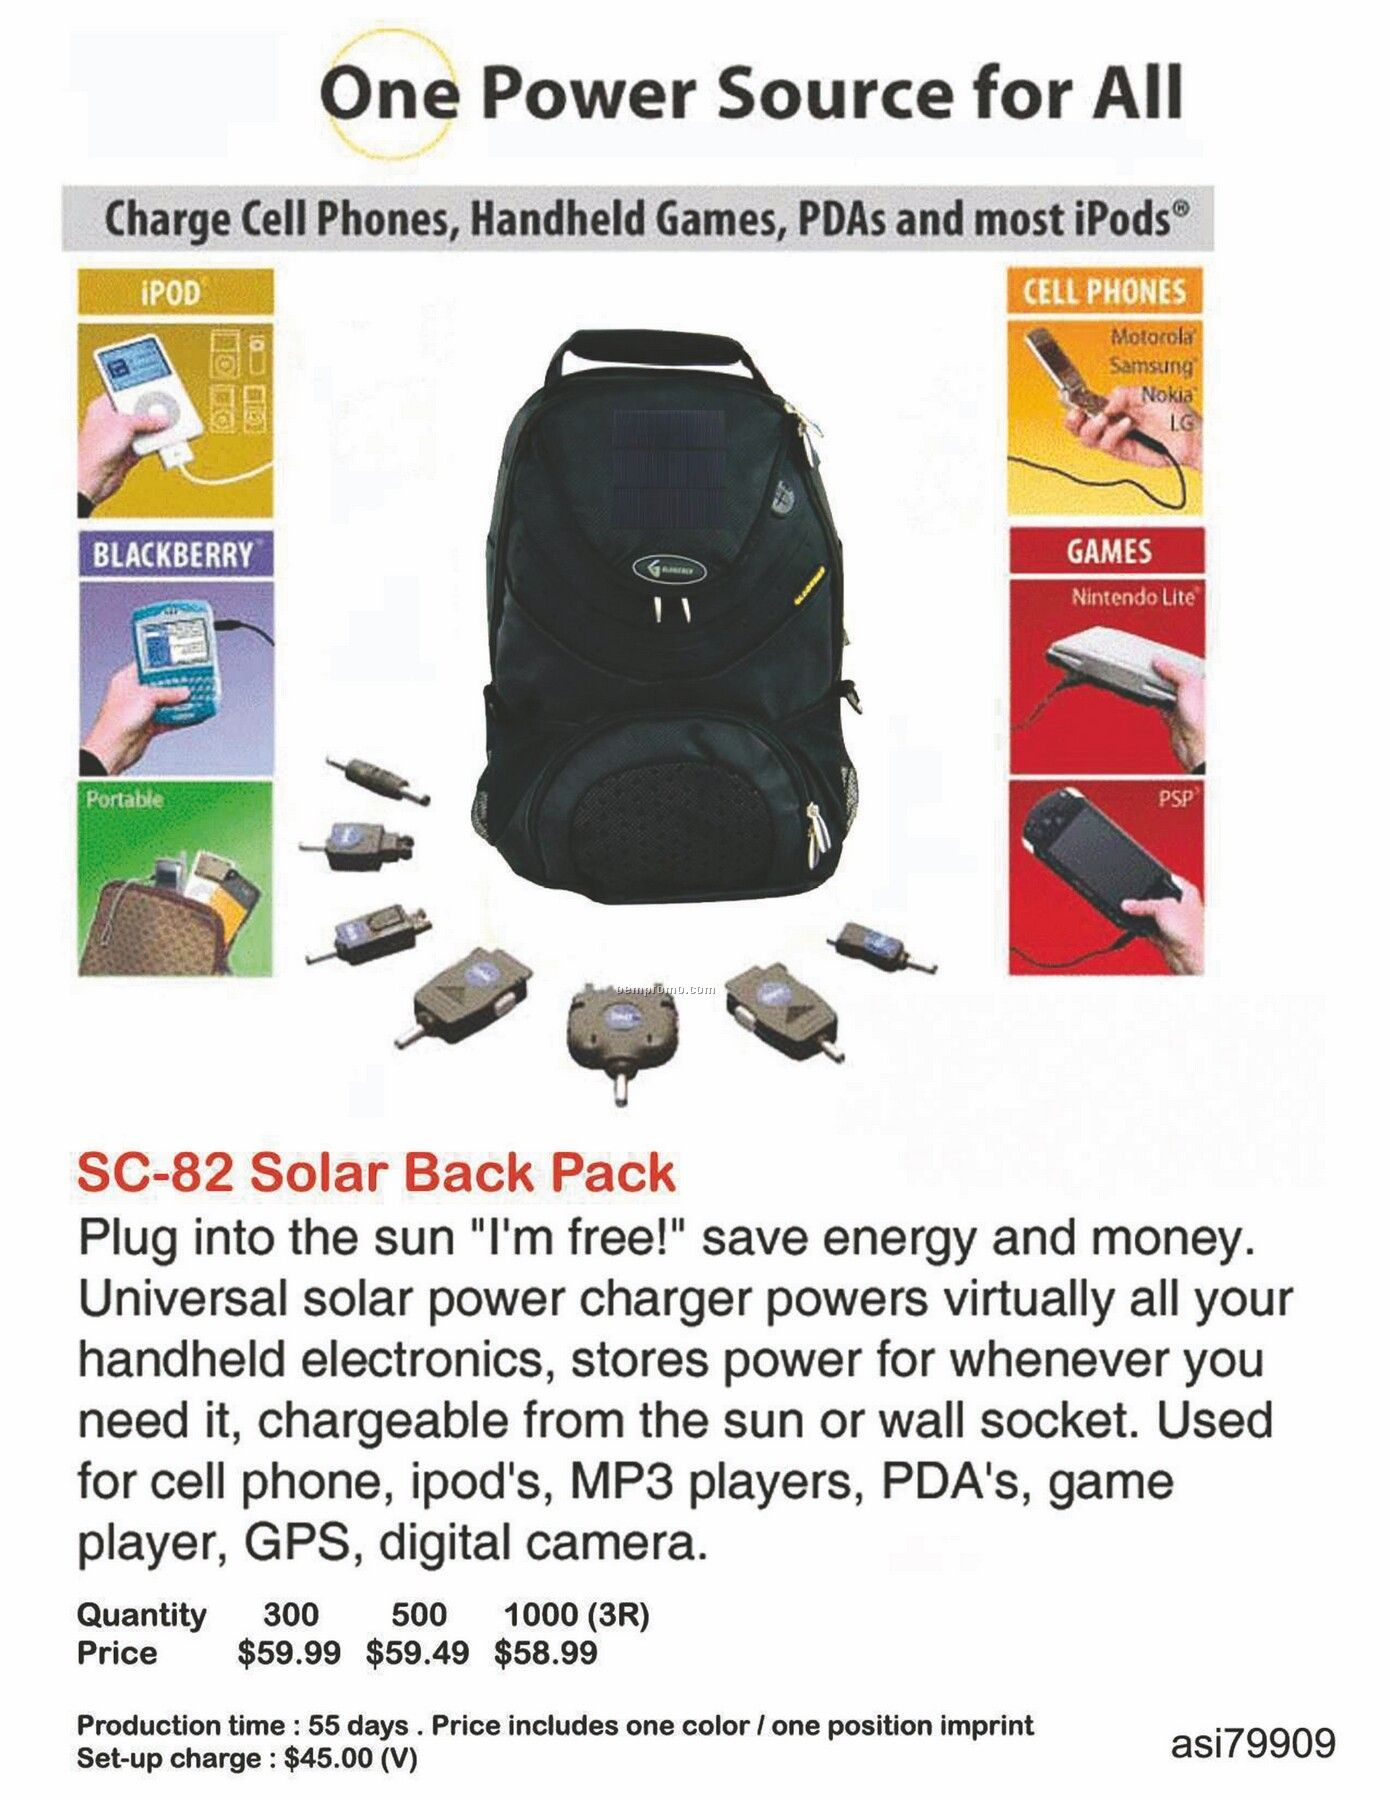 Universal Solar Charger / Backpack For Iphone, Ipod, Blackberry, Android